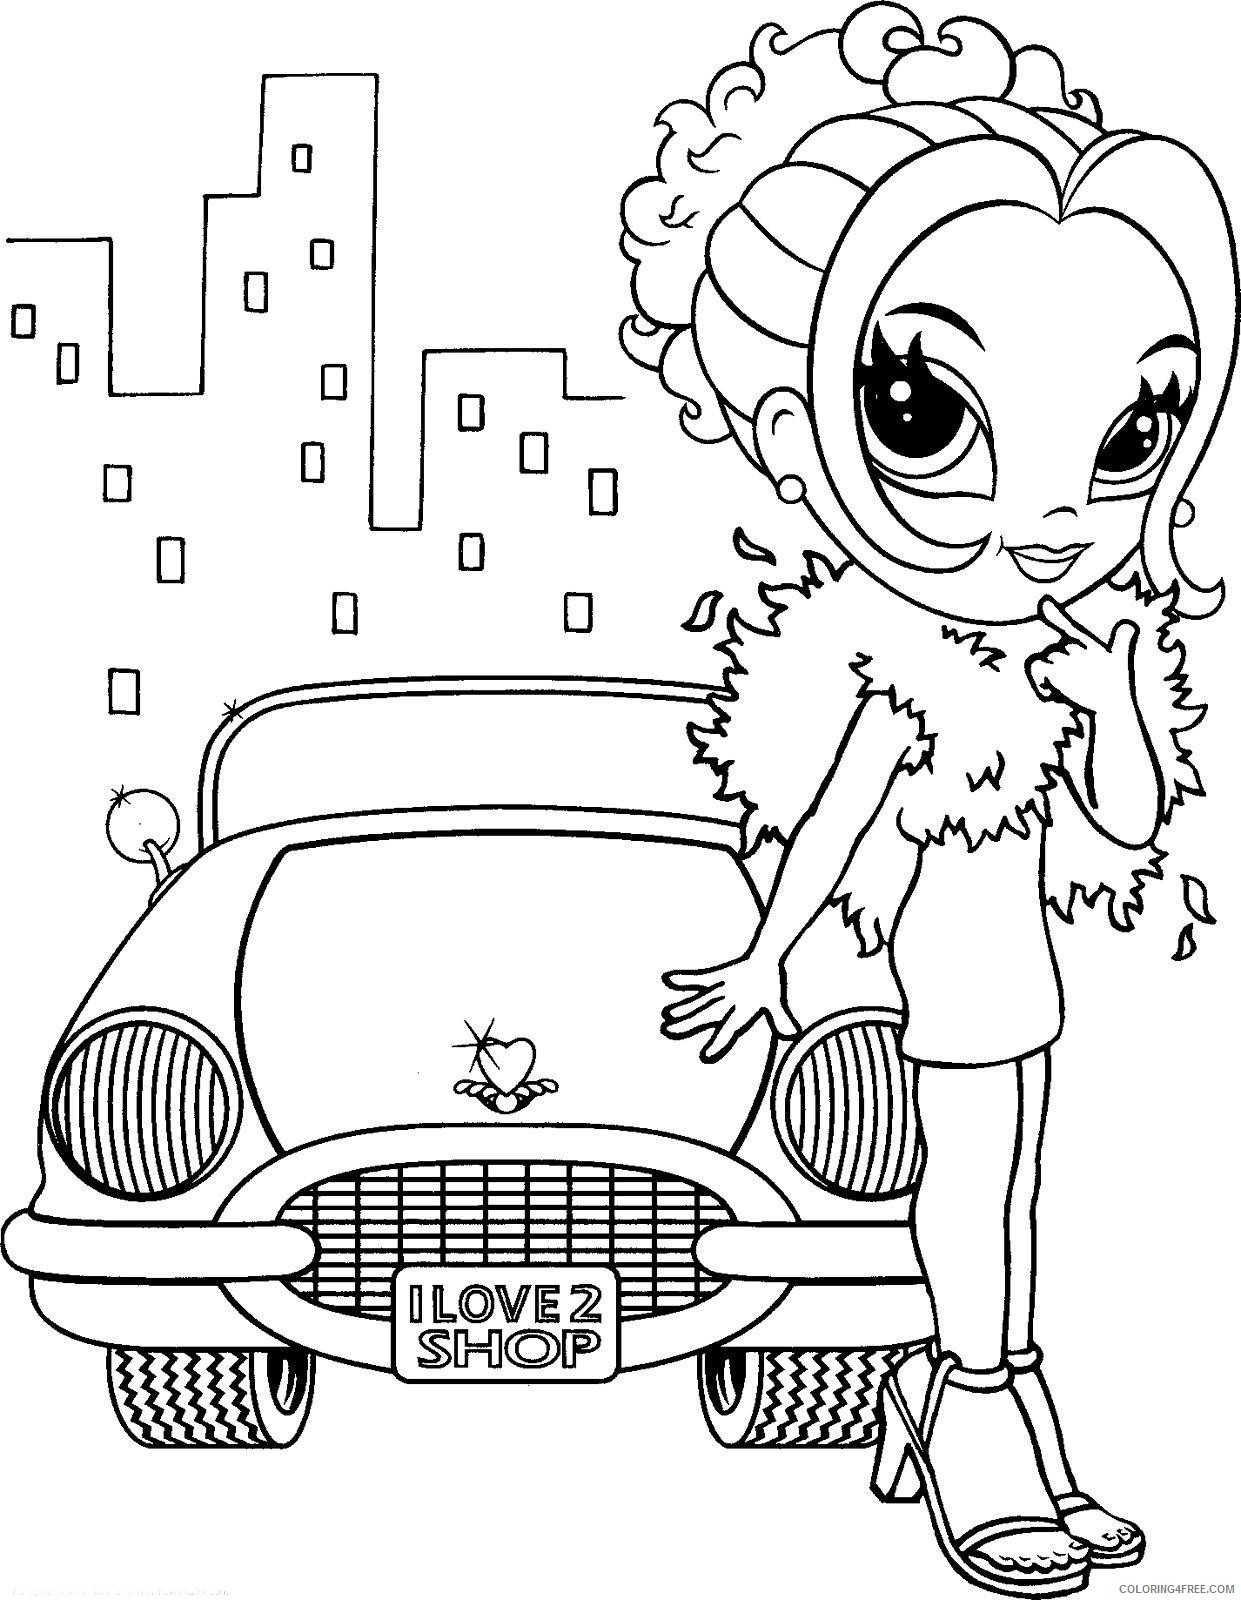 lisa frank coloring pages girl with car Coloring4free